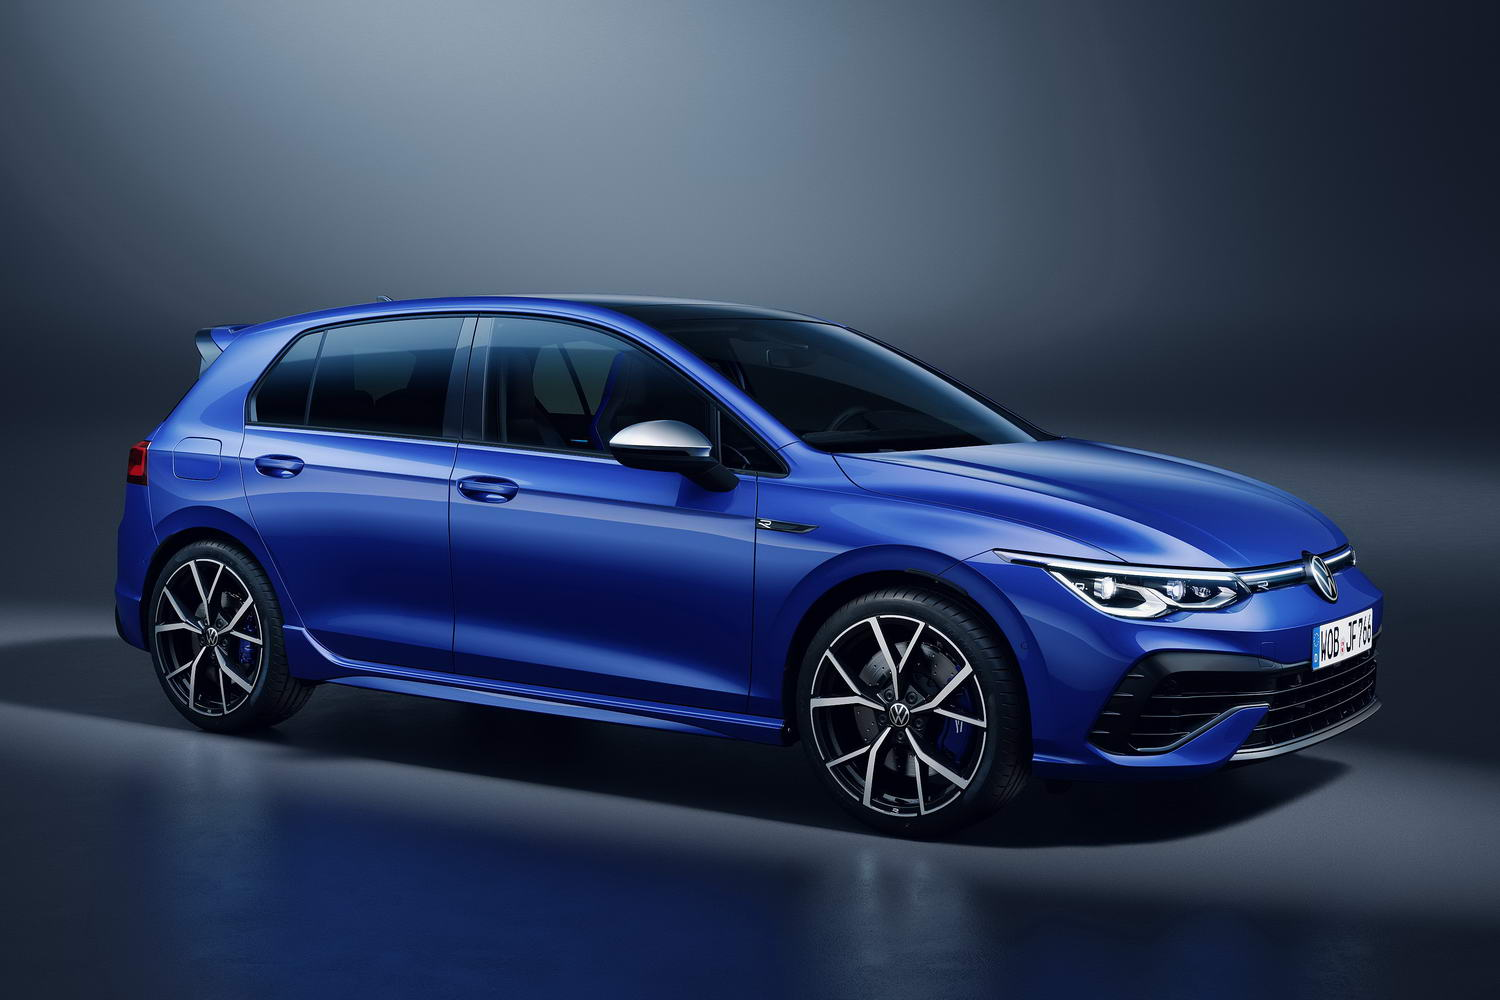 Car News | Volkswagen Golf R gets 320hp and Drift mode | CompleteCar.ie